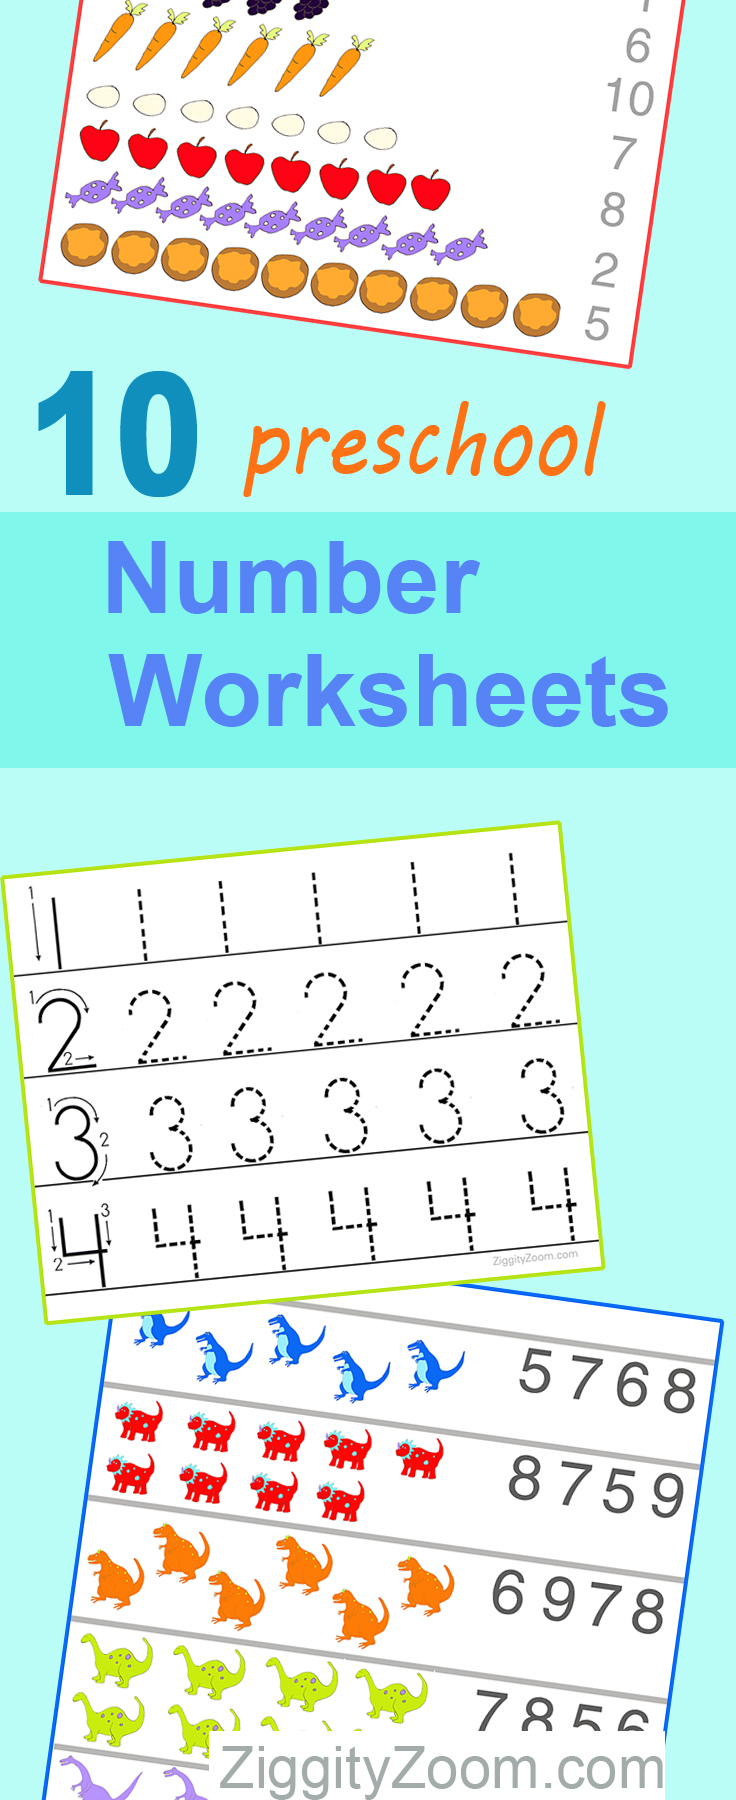 10 preschool math worksheets number recognition flashcards tracing. Black Bedroom Furniture Sets. Home Design Ideas